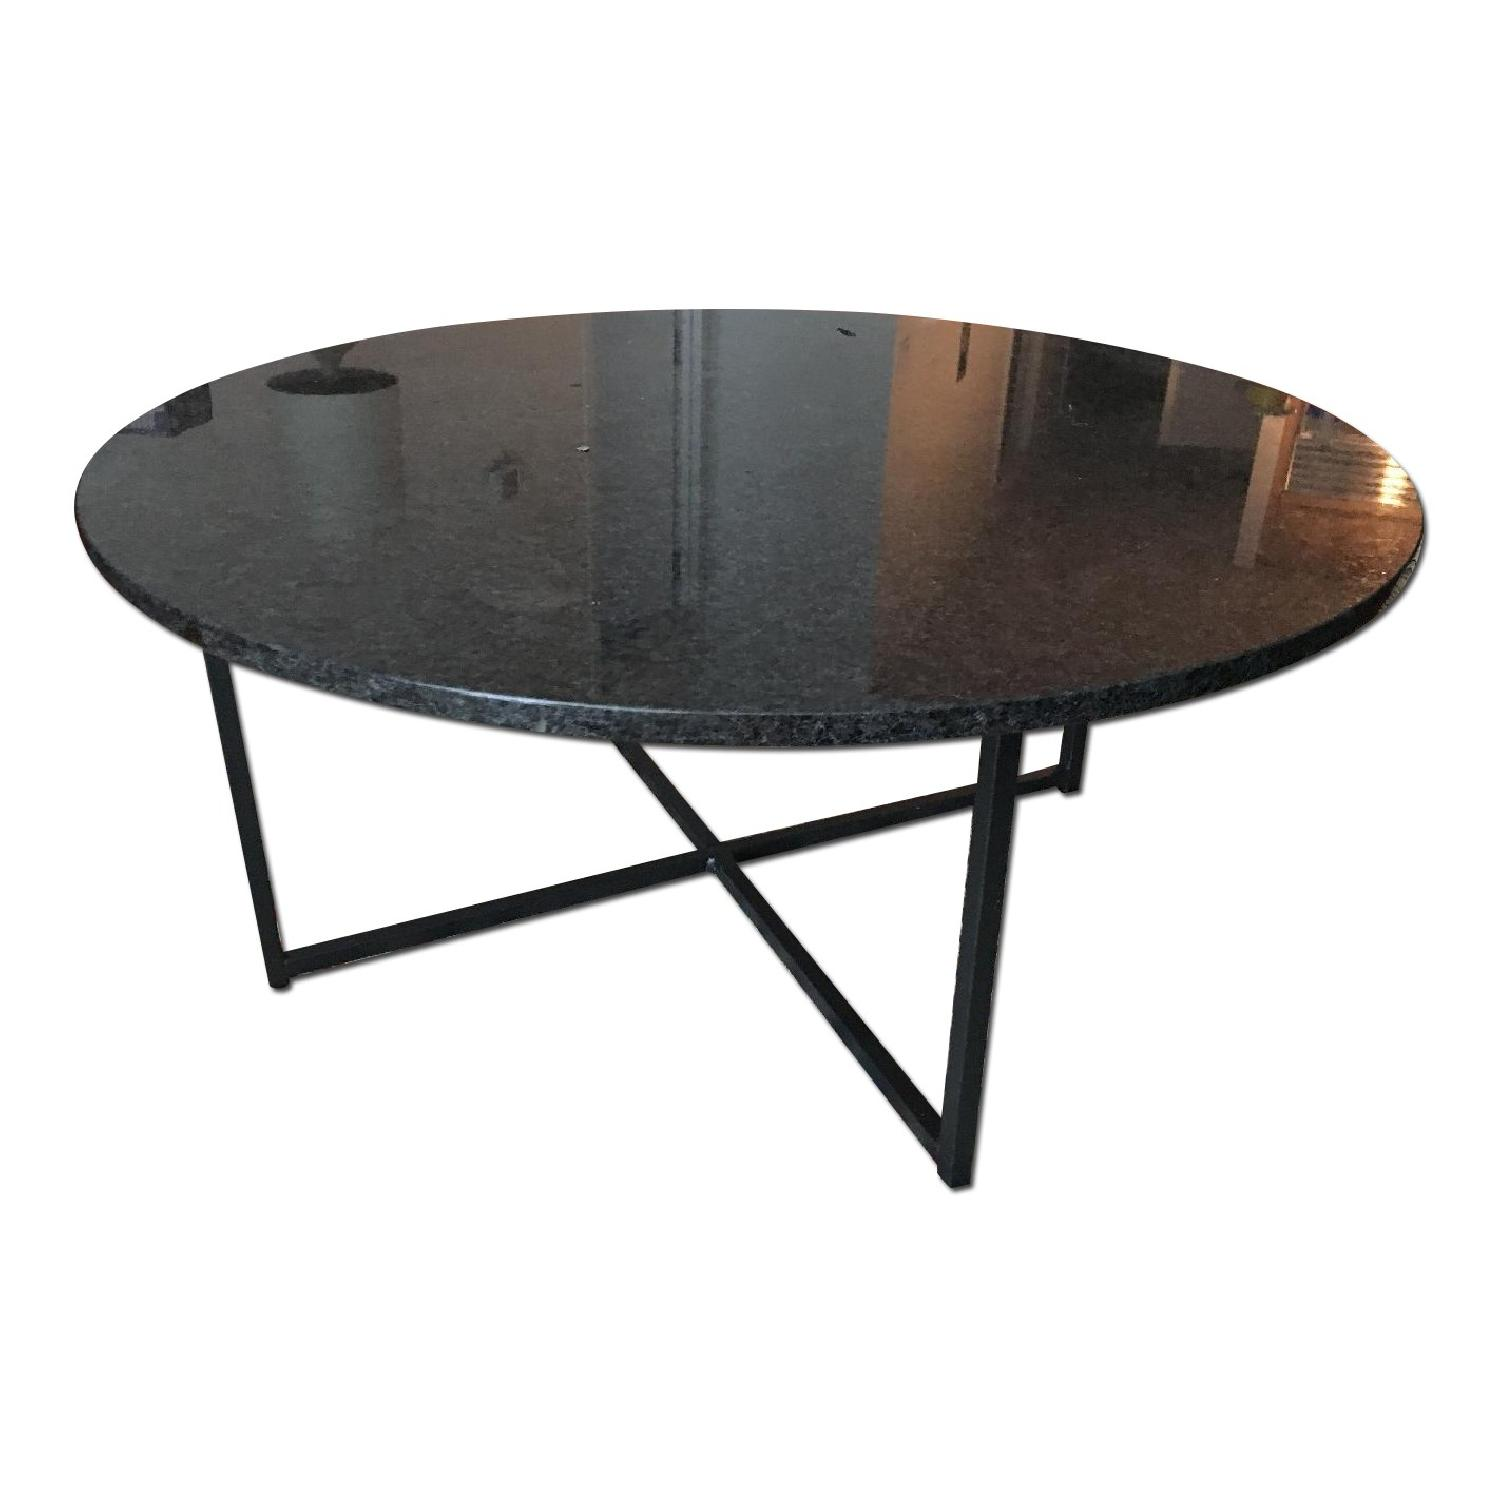 Room & Board Cocktail Table in Natural Steel - image-0